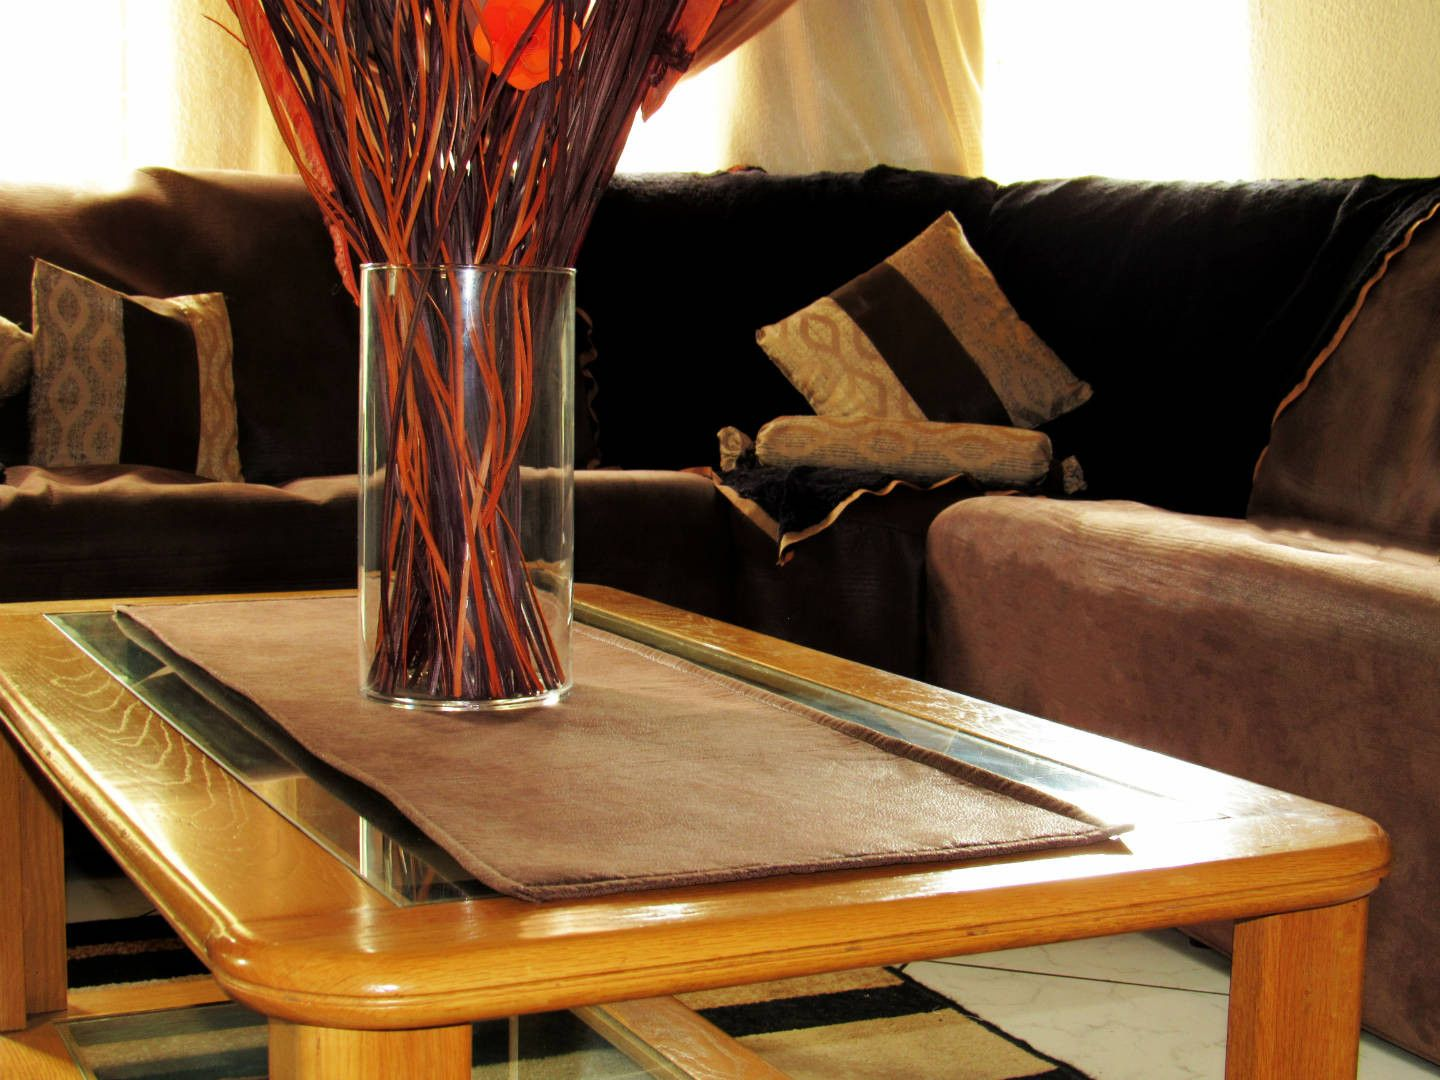 Brown Leather Table Runner With Black Couch Throw Over. A Sweety Cushion  (Neck Support Cushion) And Scatter Cushions